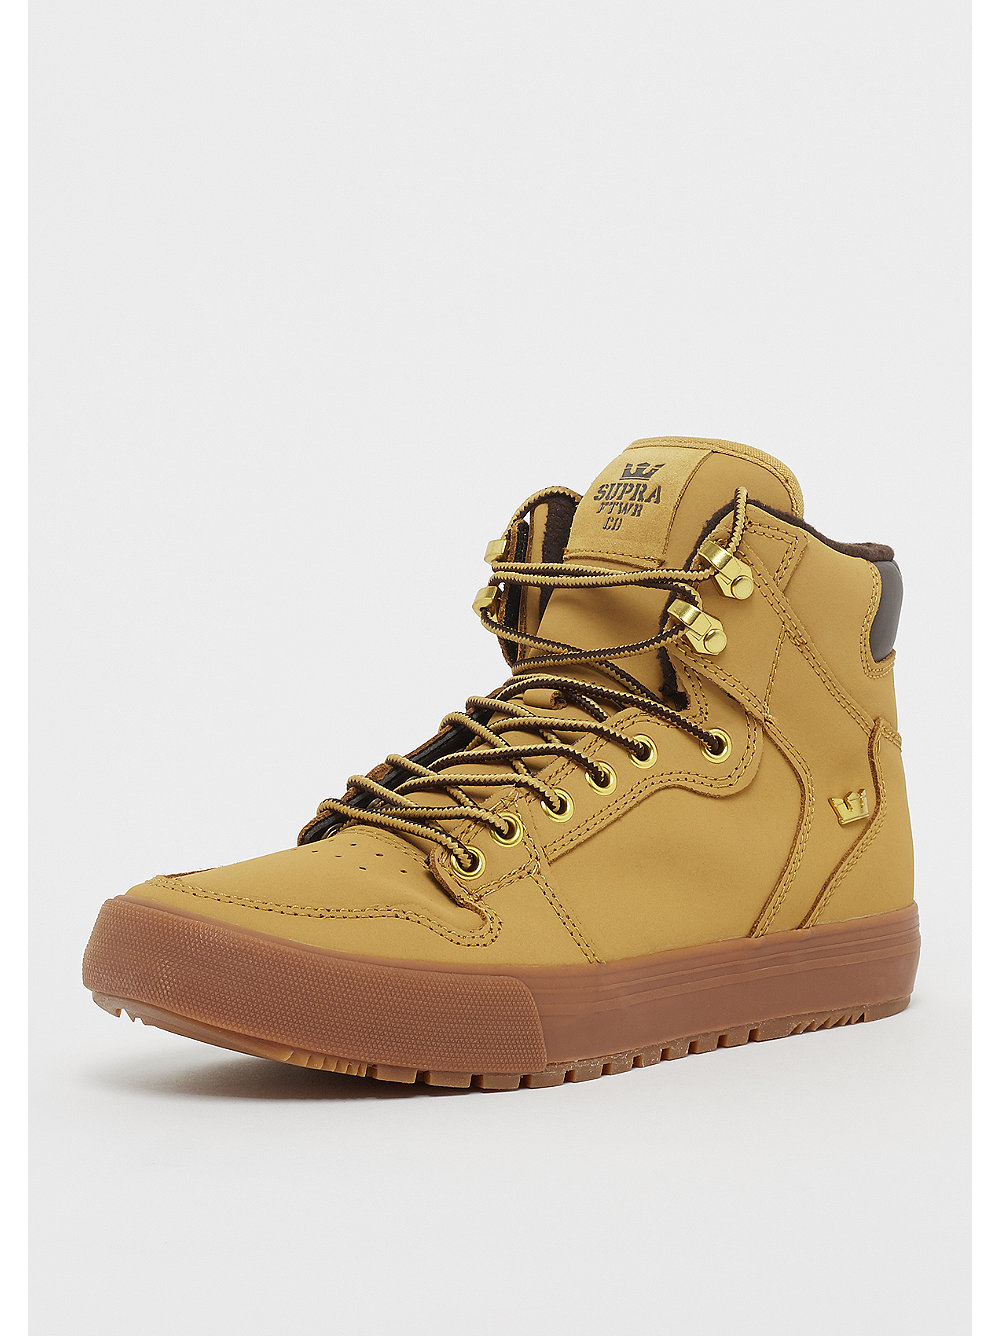 Vaider Cw Amber Light Gum Gold qzSVpUM